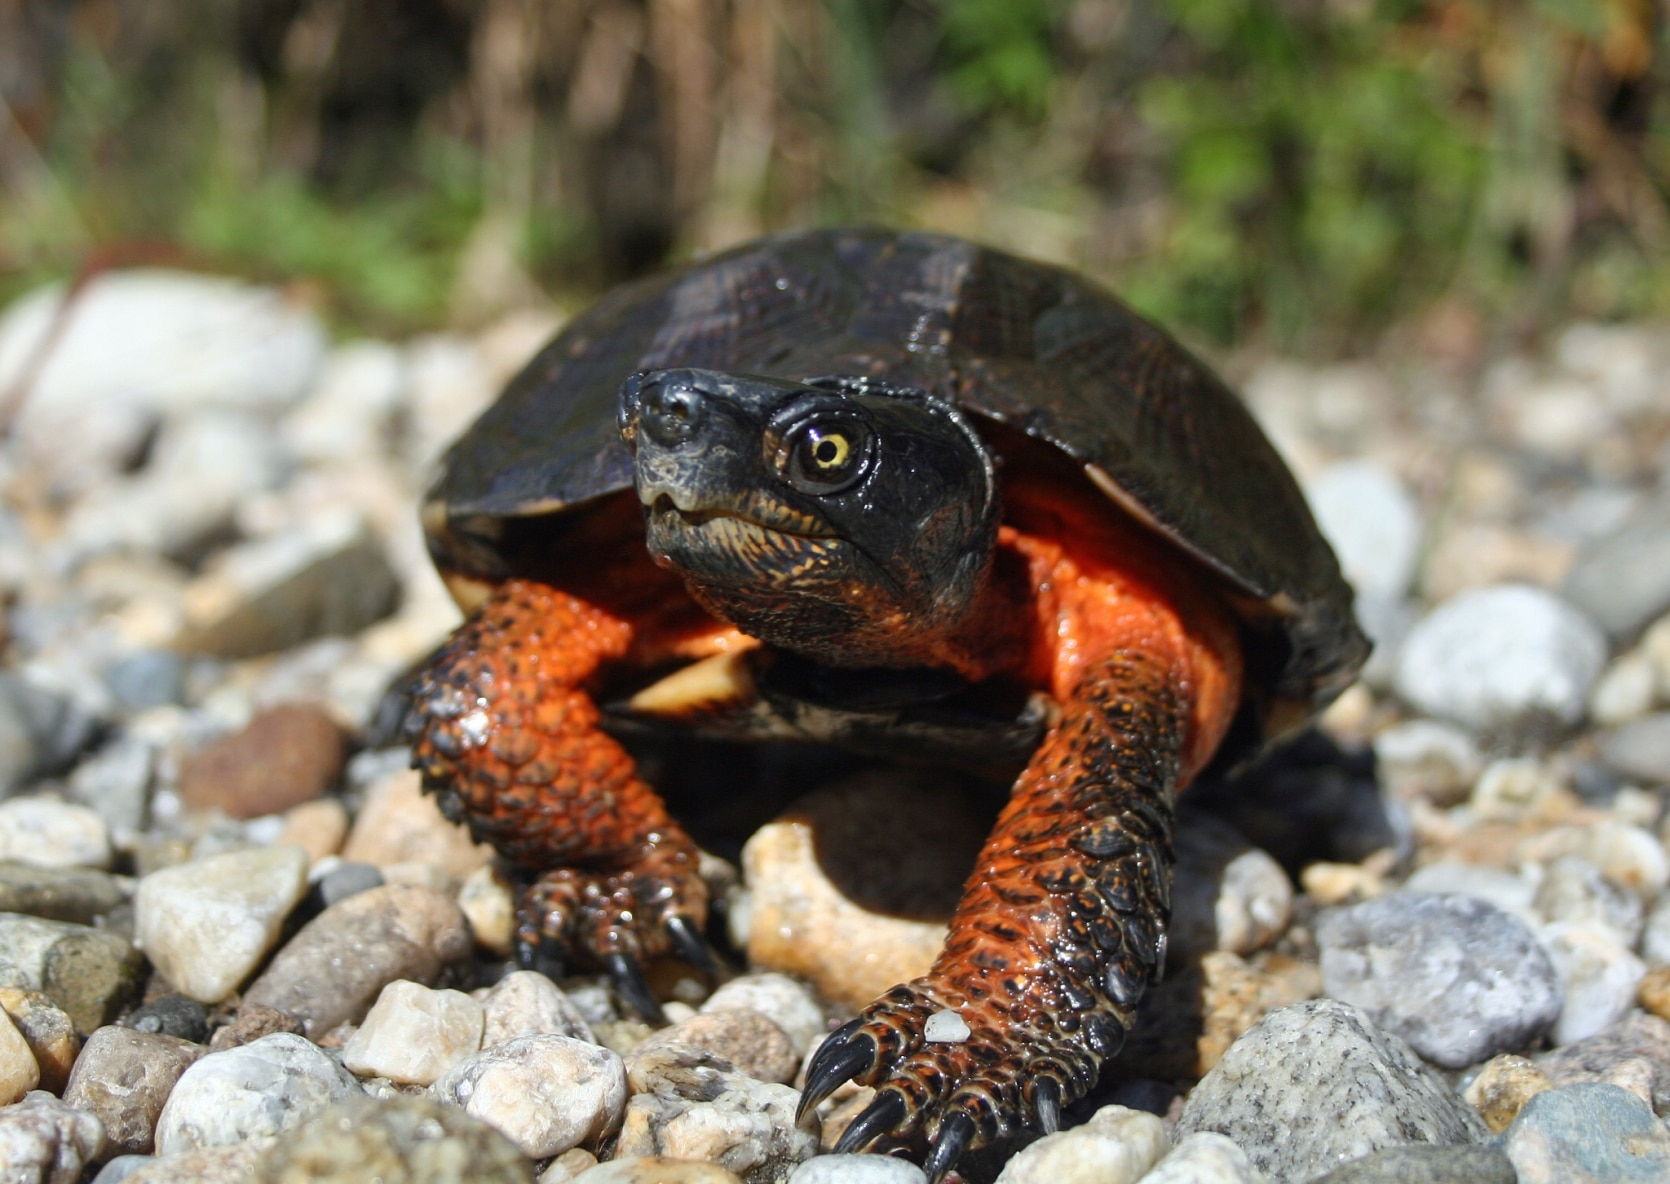 Wood turtle walking on stones